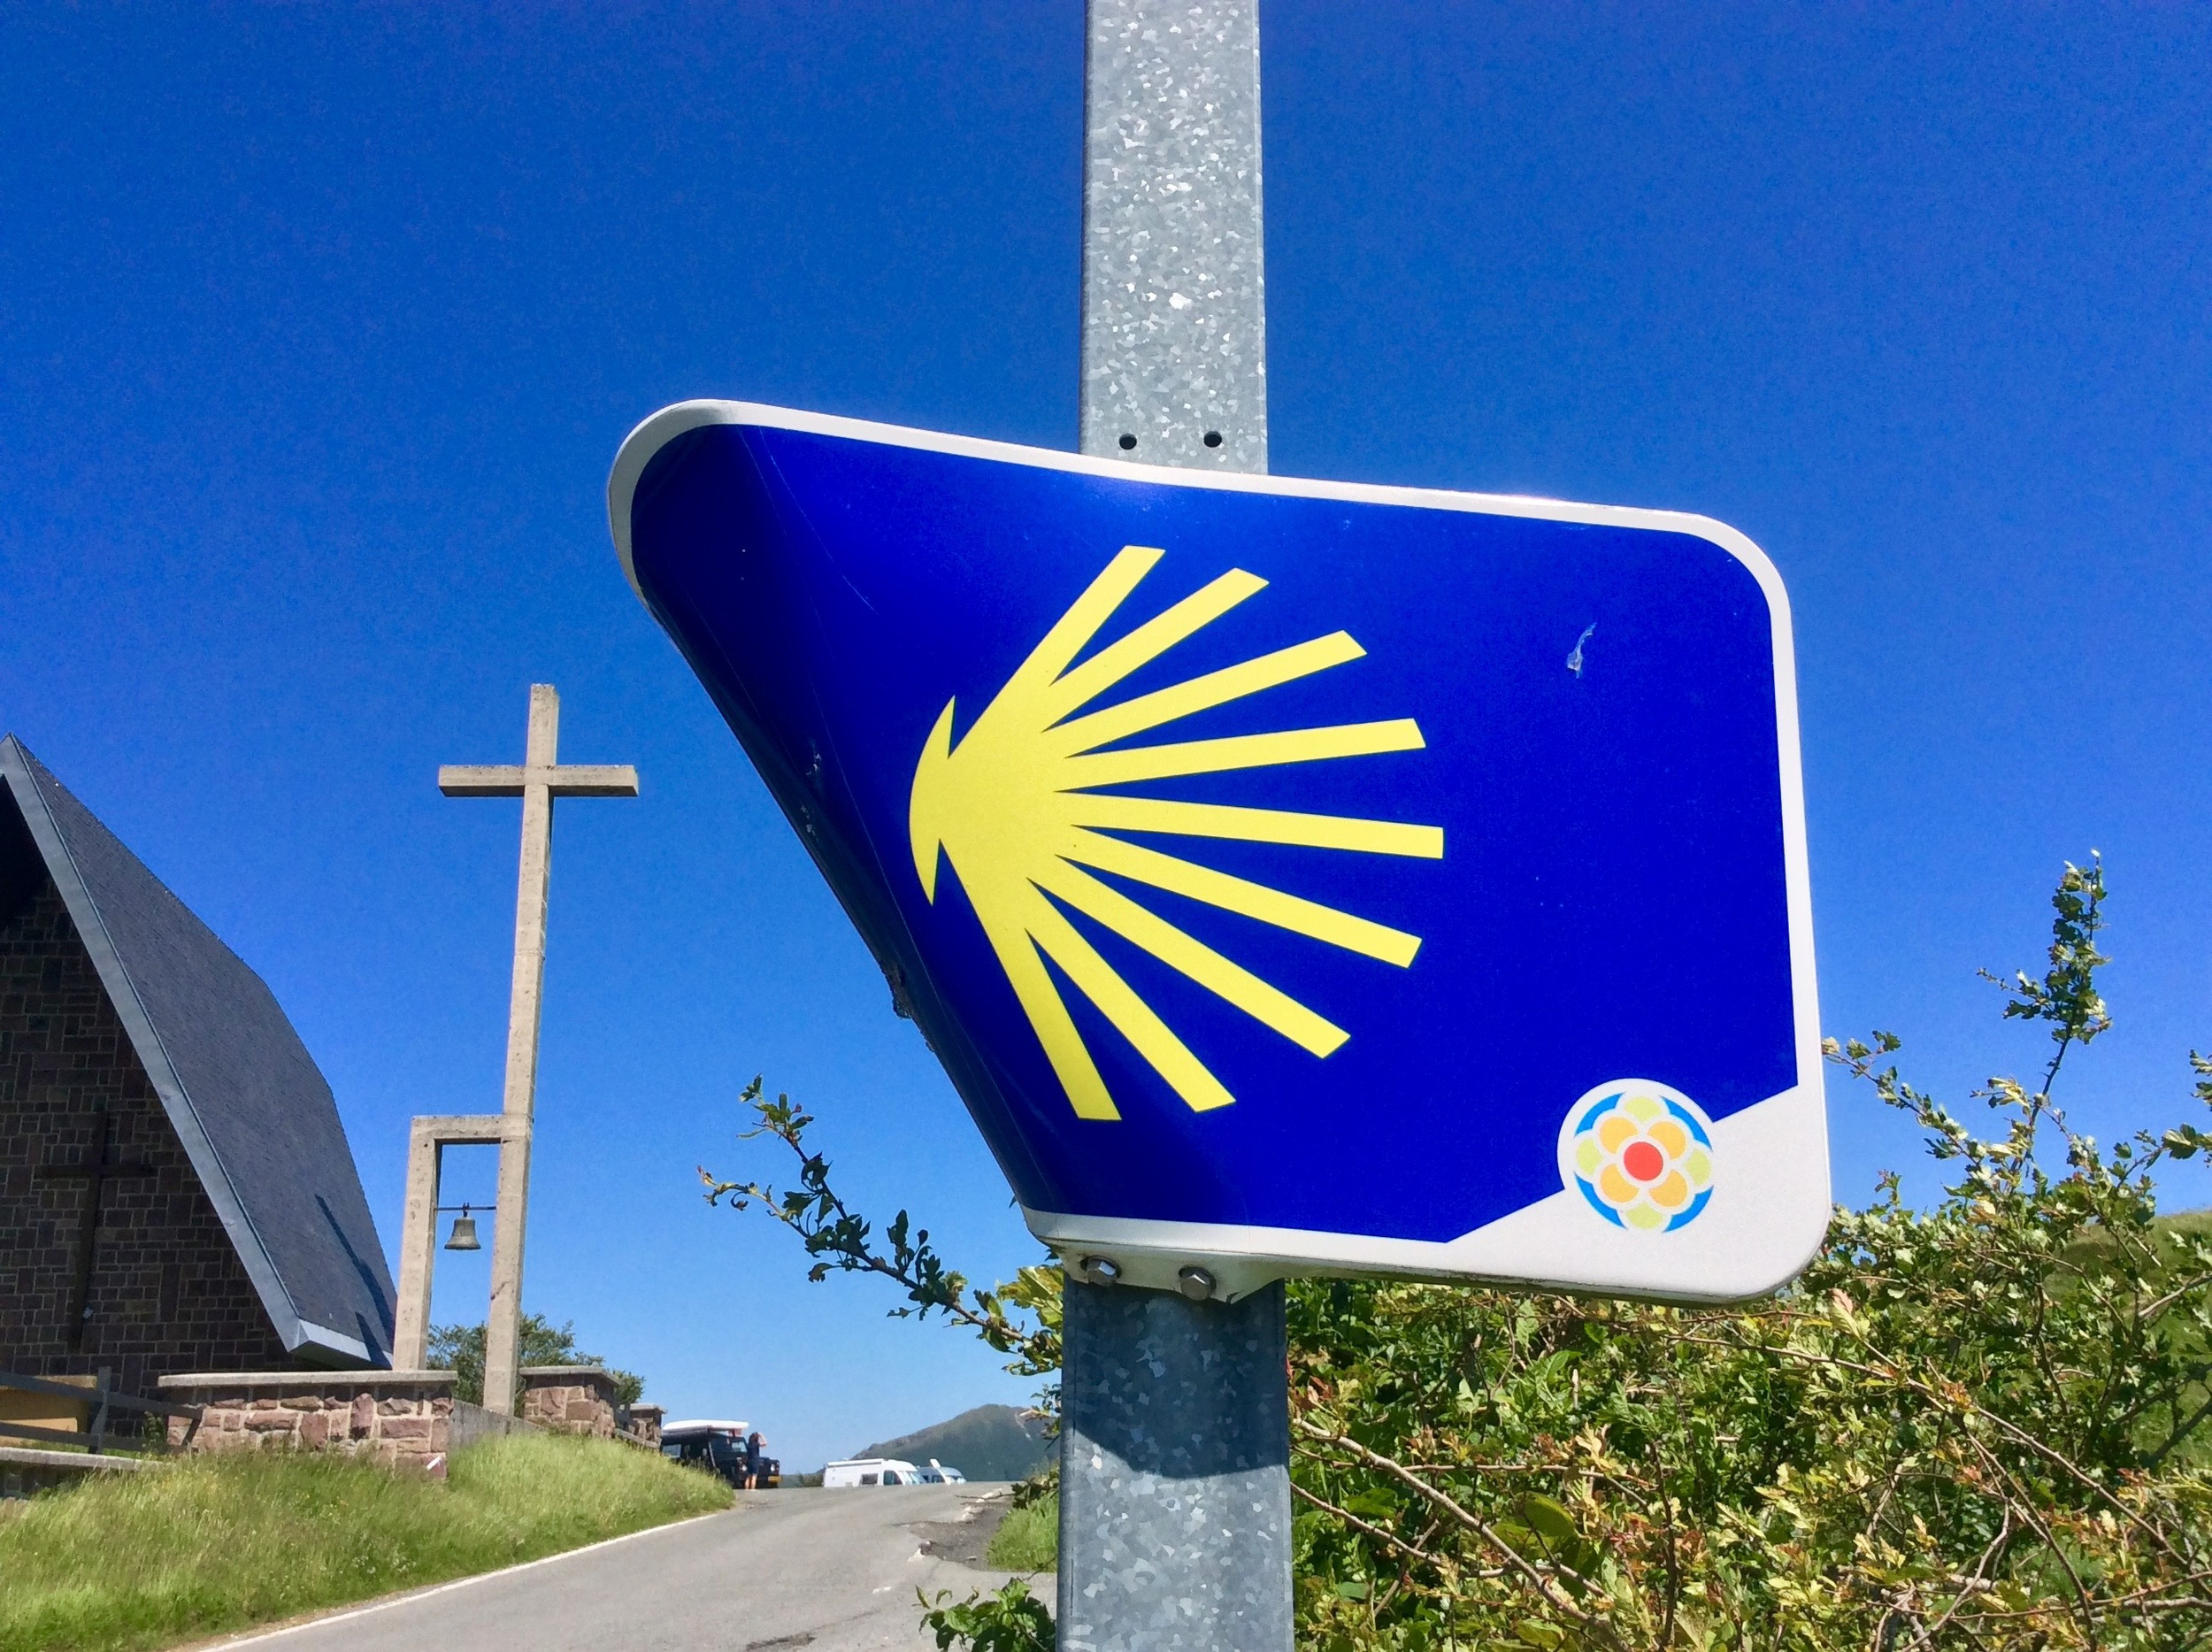 Crossing the Camino de Santiago